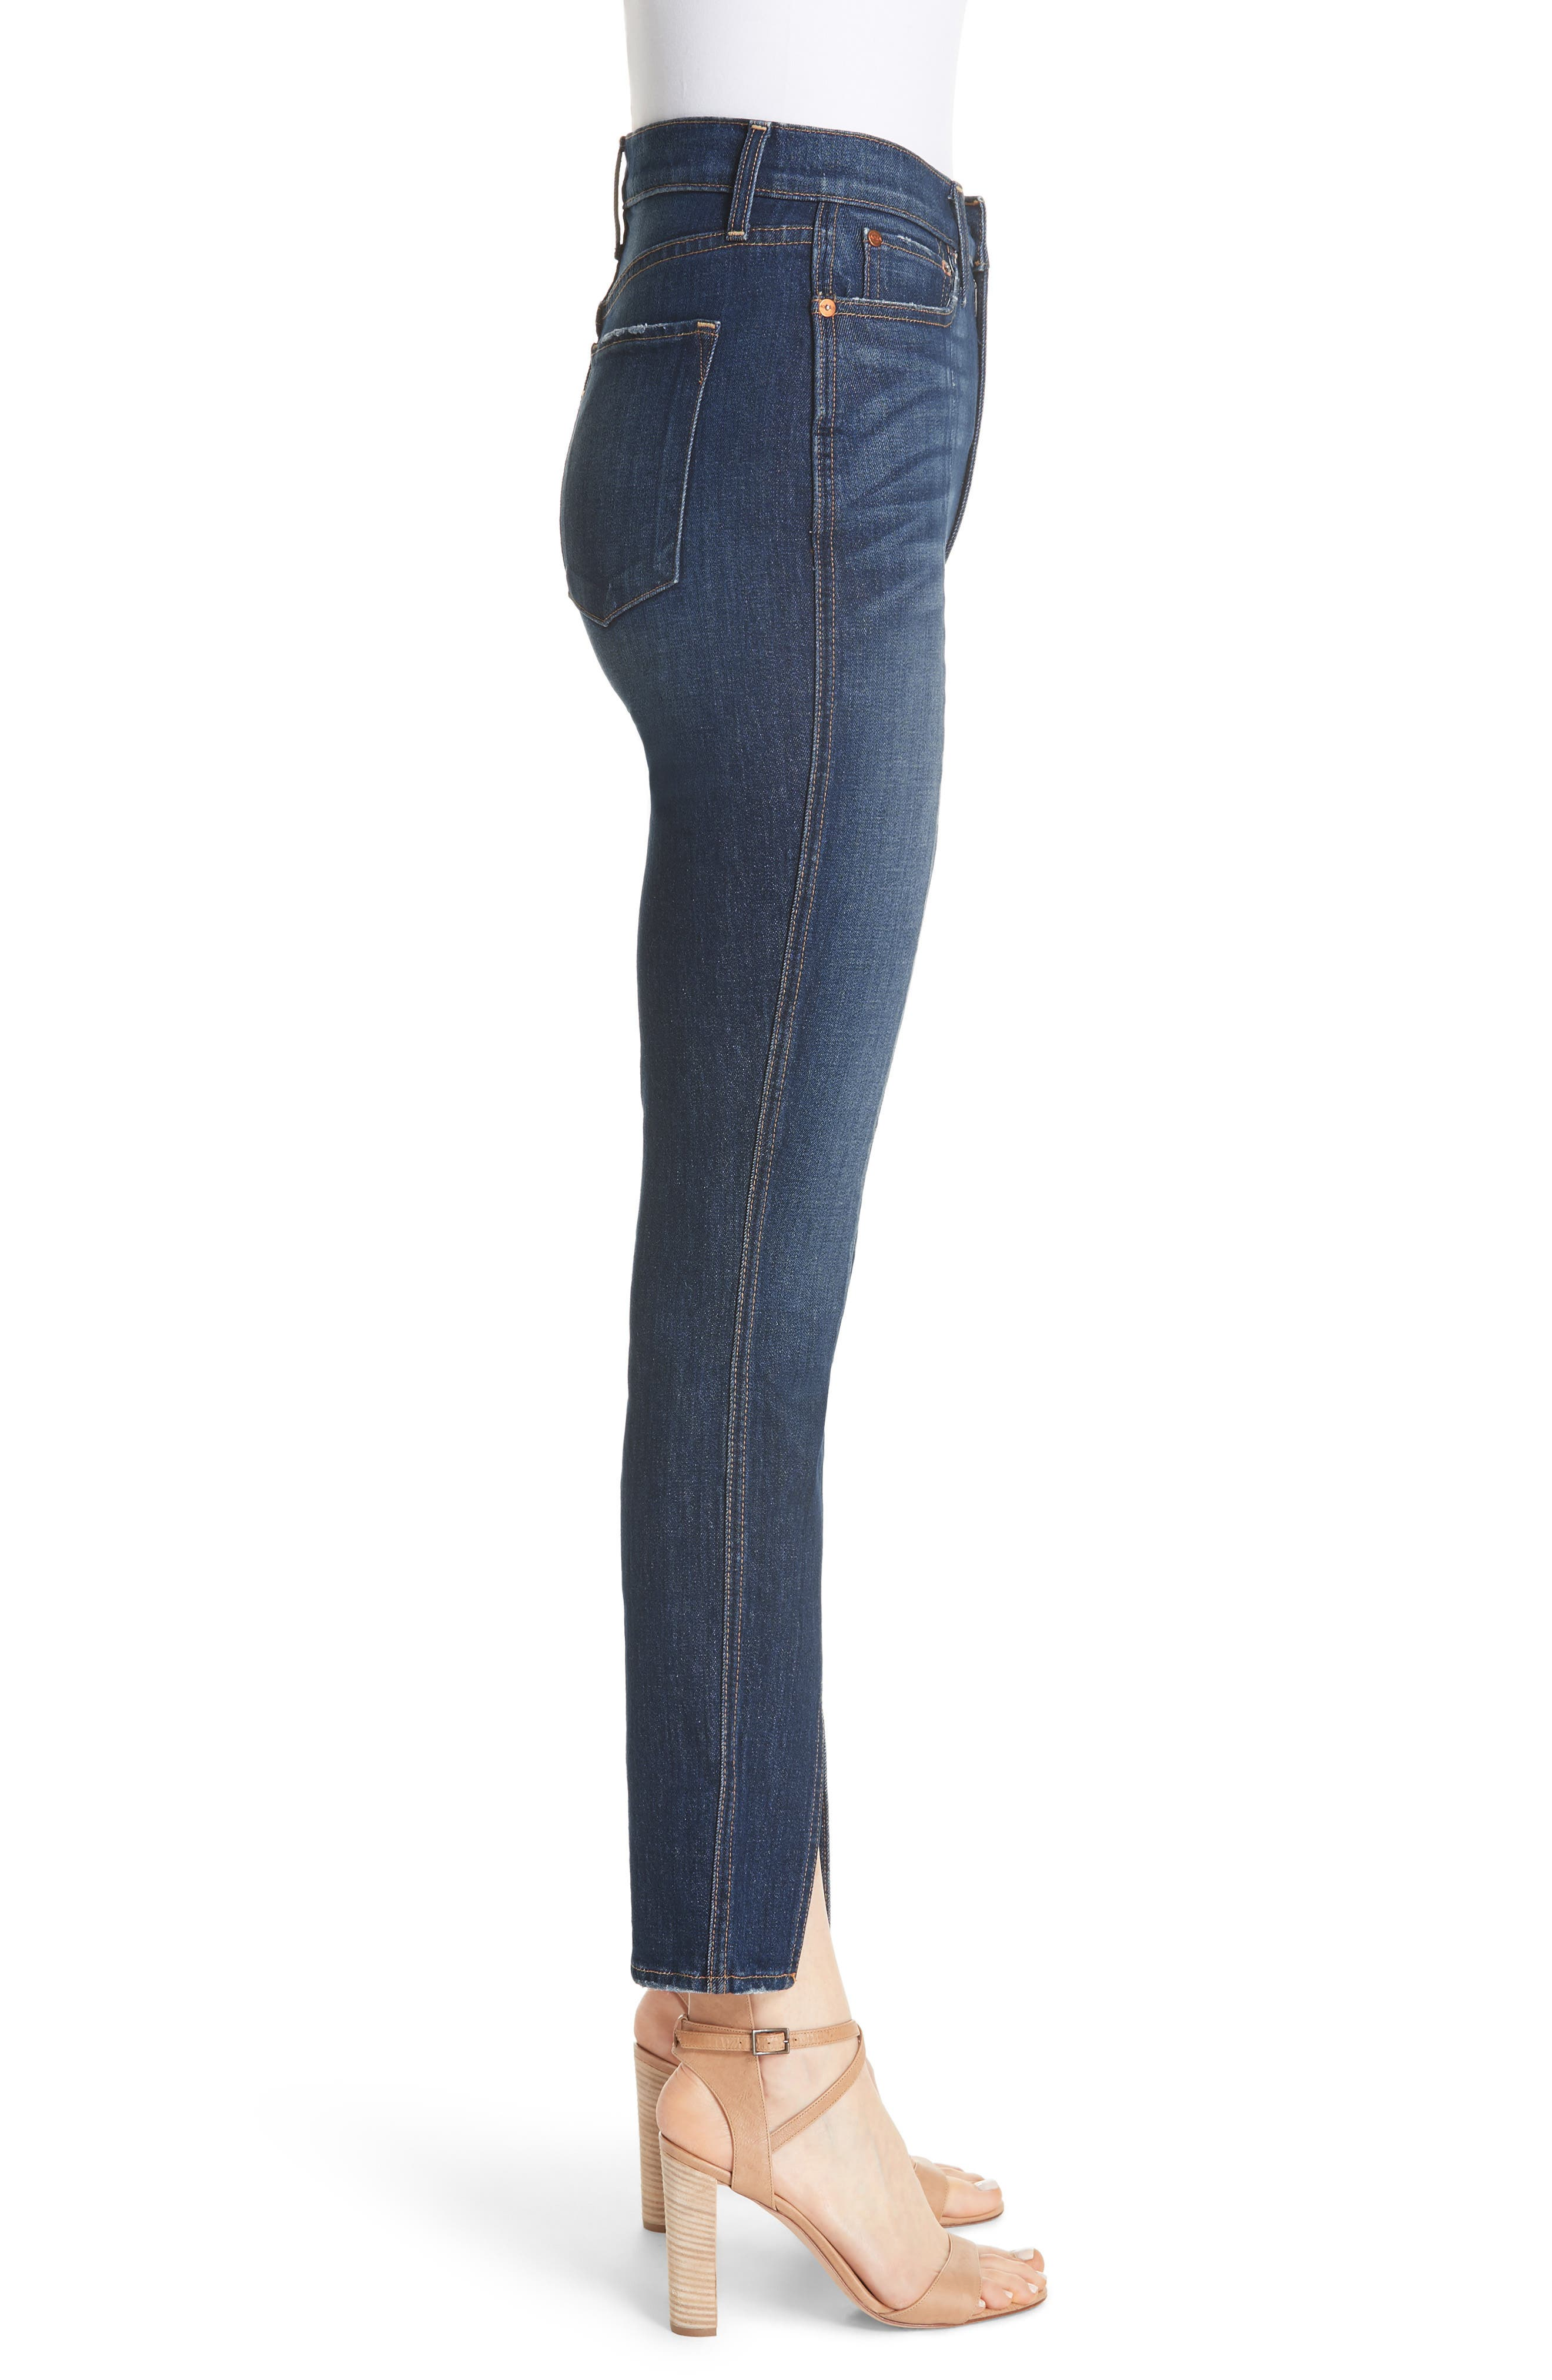 AO.LA Good High Waist Front Slit Skinny Jeans,                             Alternate thumbnail 3, color,                             GOOD TIMES